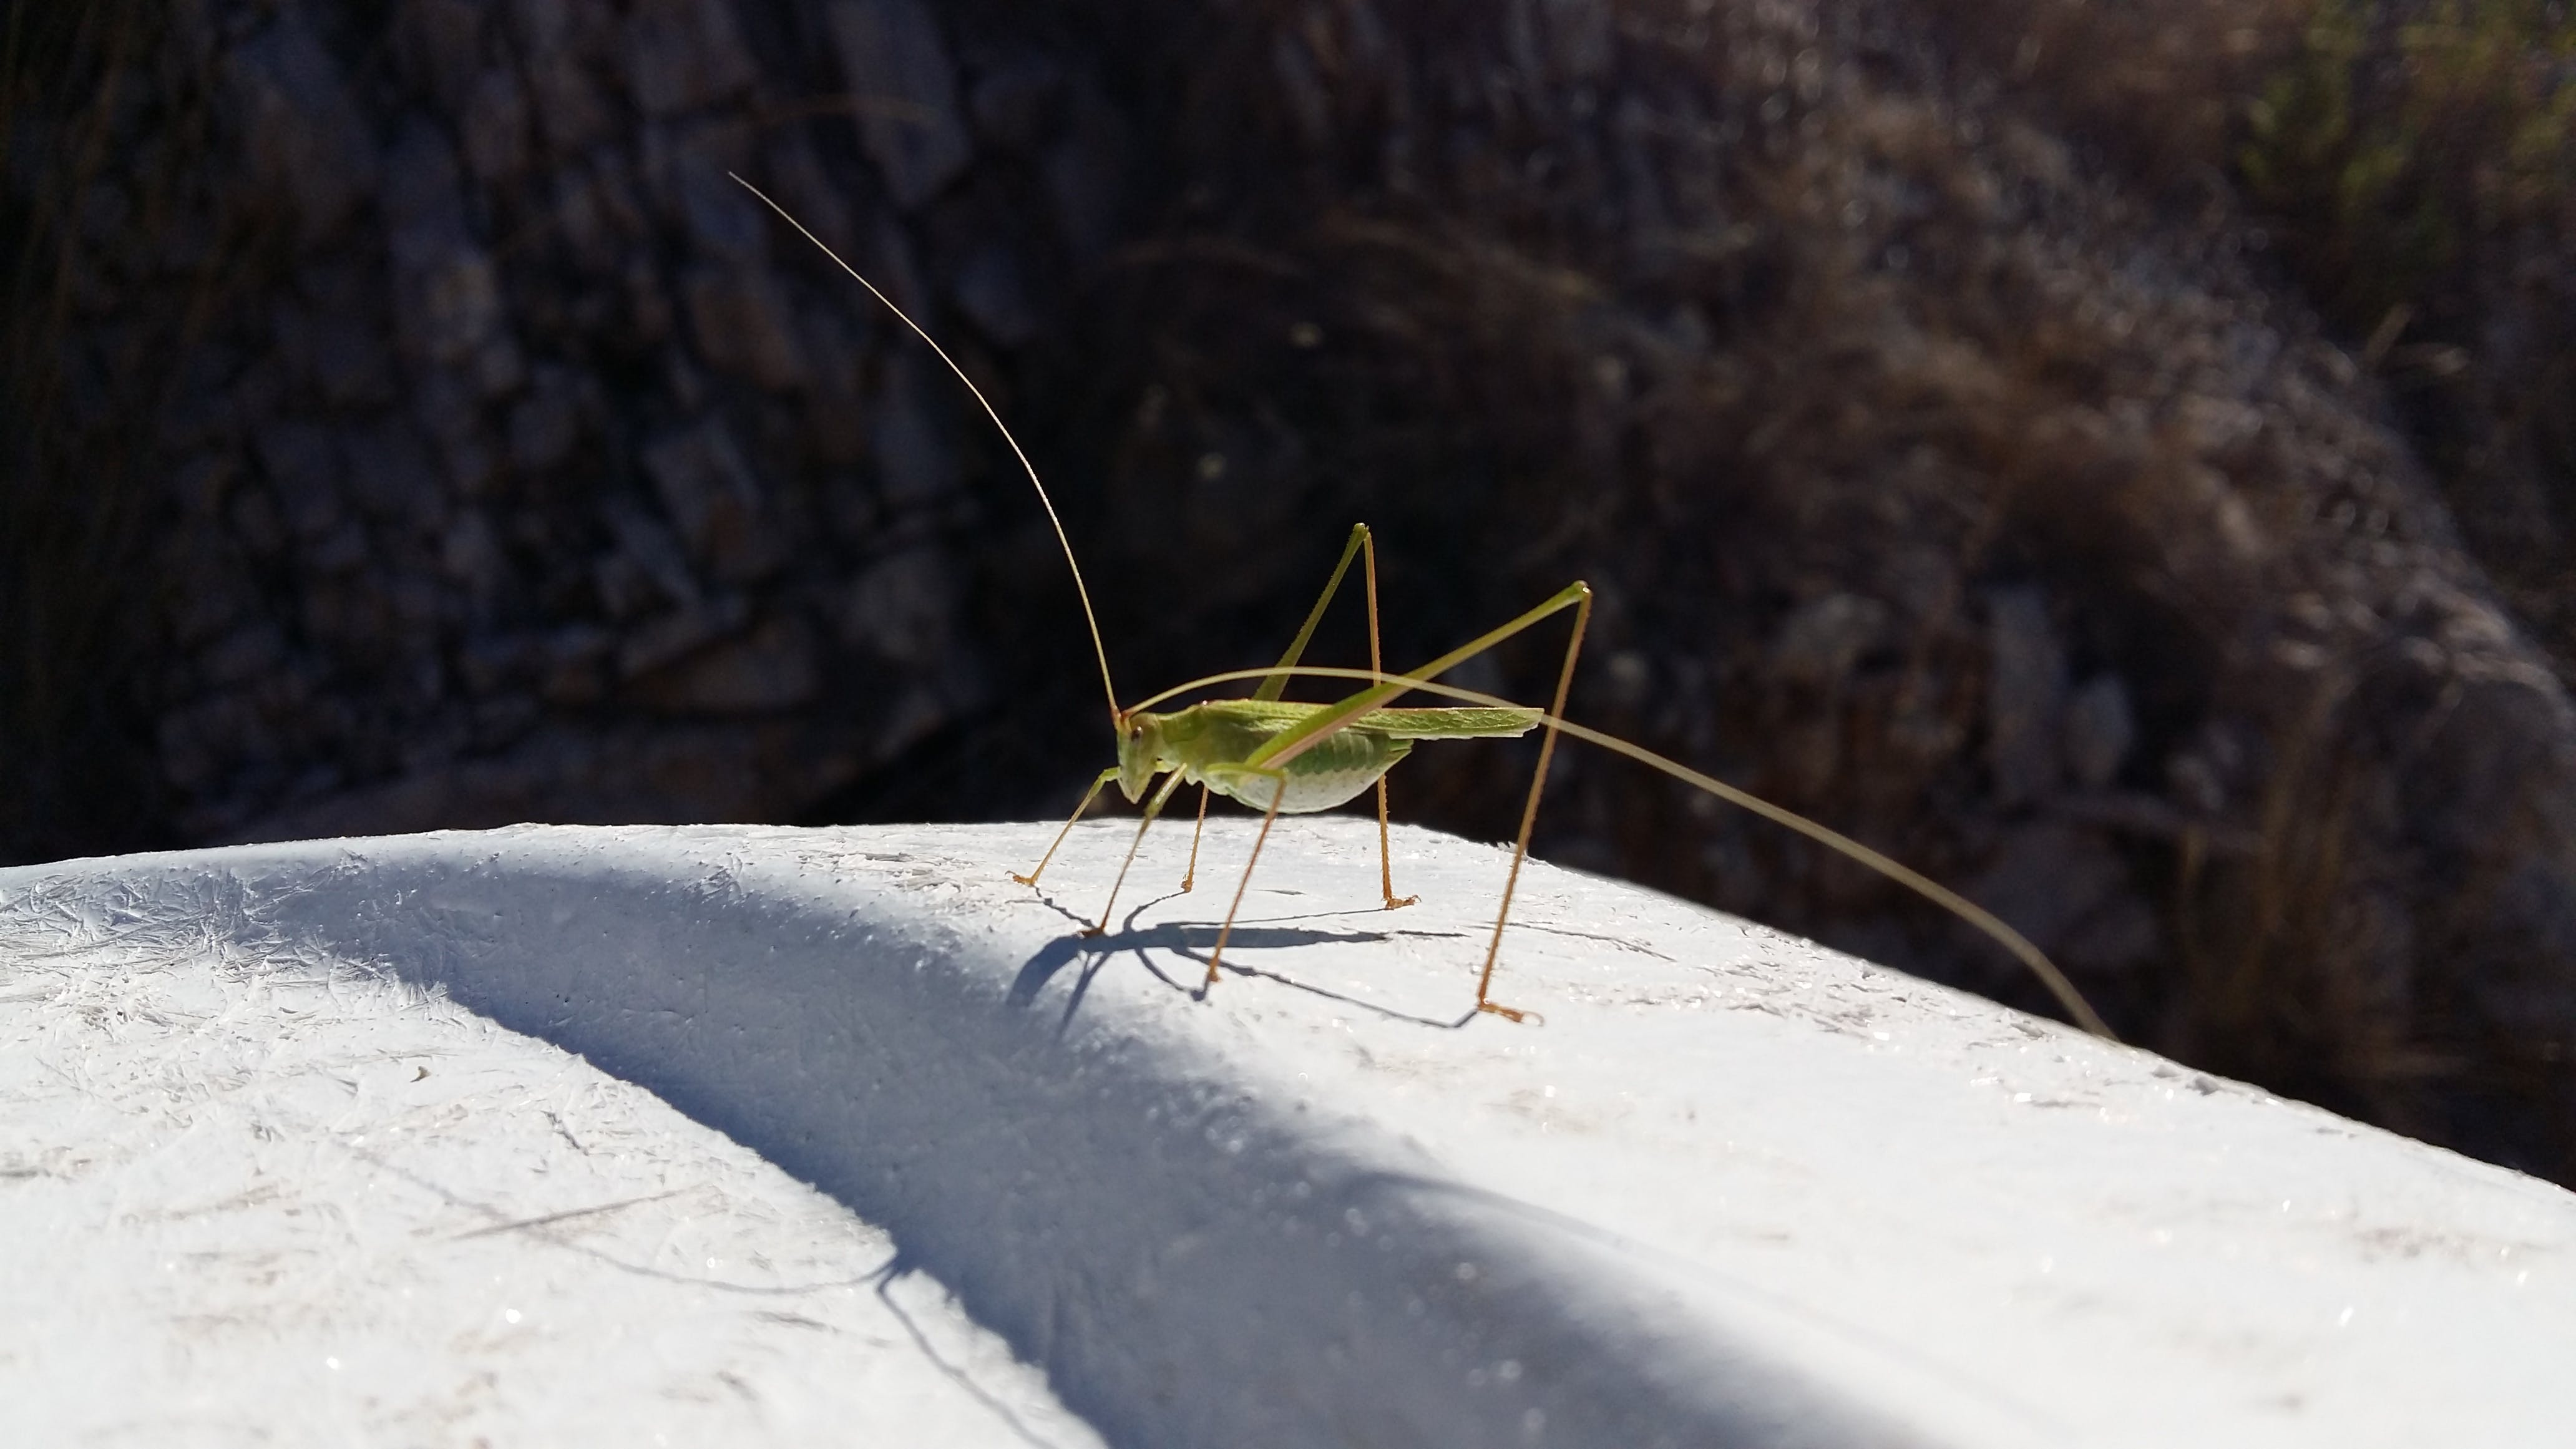 Free stock photo of grasshopper, insect, nature